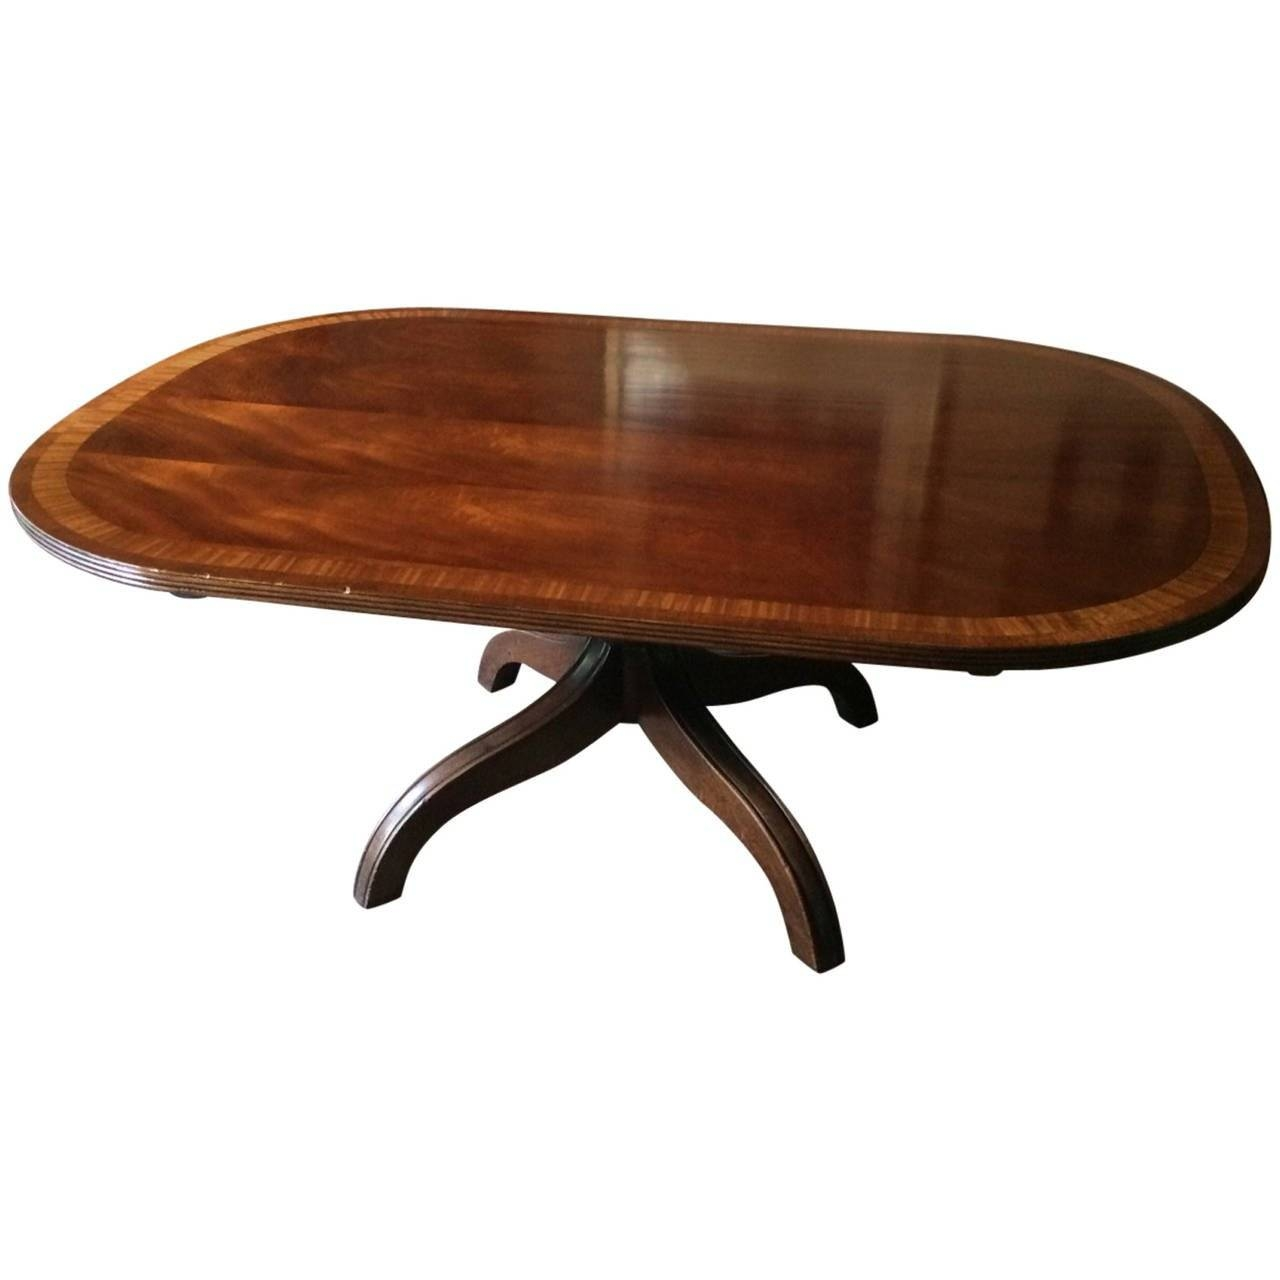 Antique Mahogany And Rosewood Oblong Coffee Table At 1Stdibs regarding Oblong Coffee Tables (Image 2 of 30)